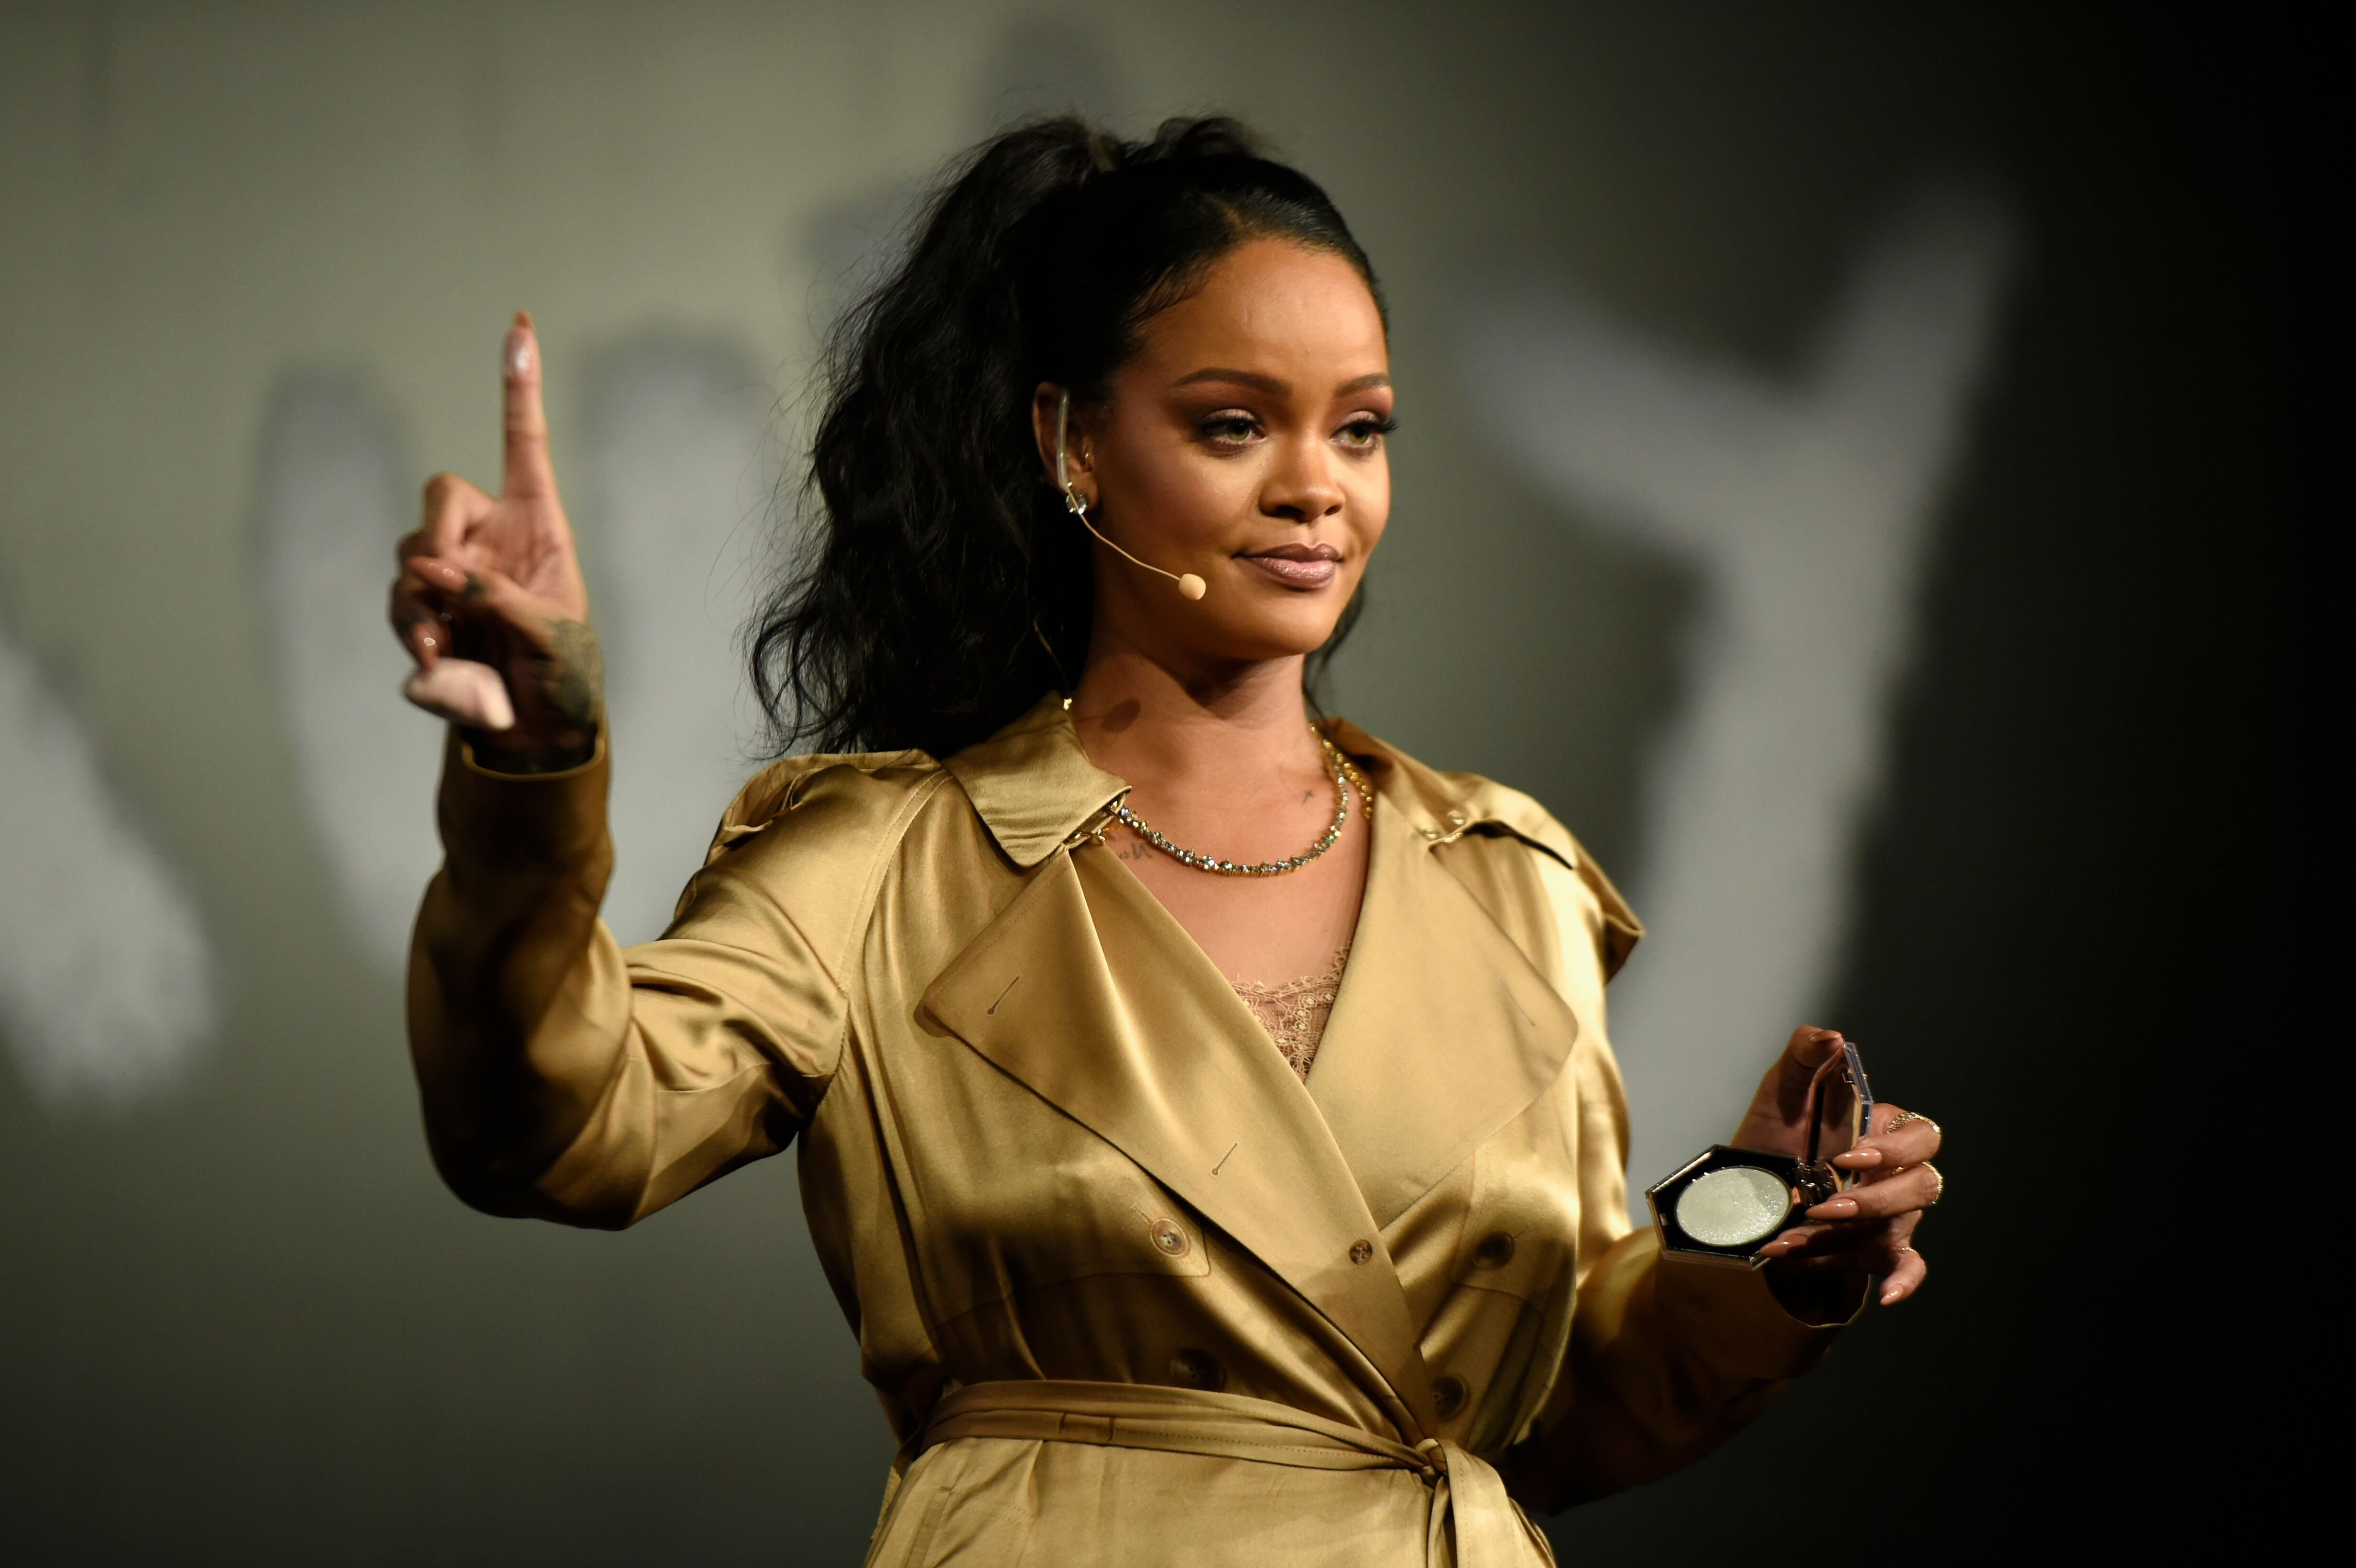 Rihanna during a beauty talk in Dubai for her Fenty Beauty line. | Photo: Getty Images